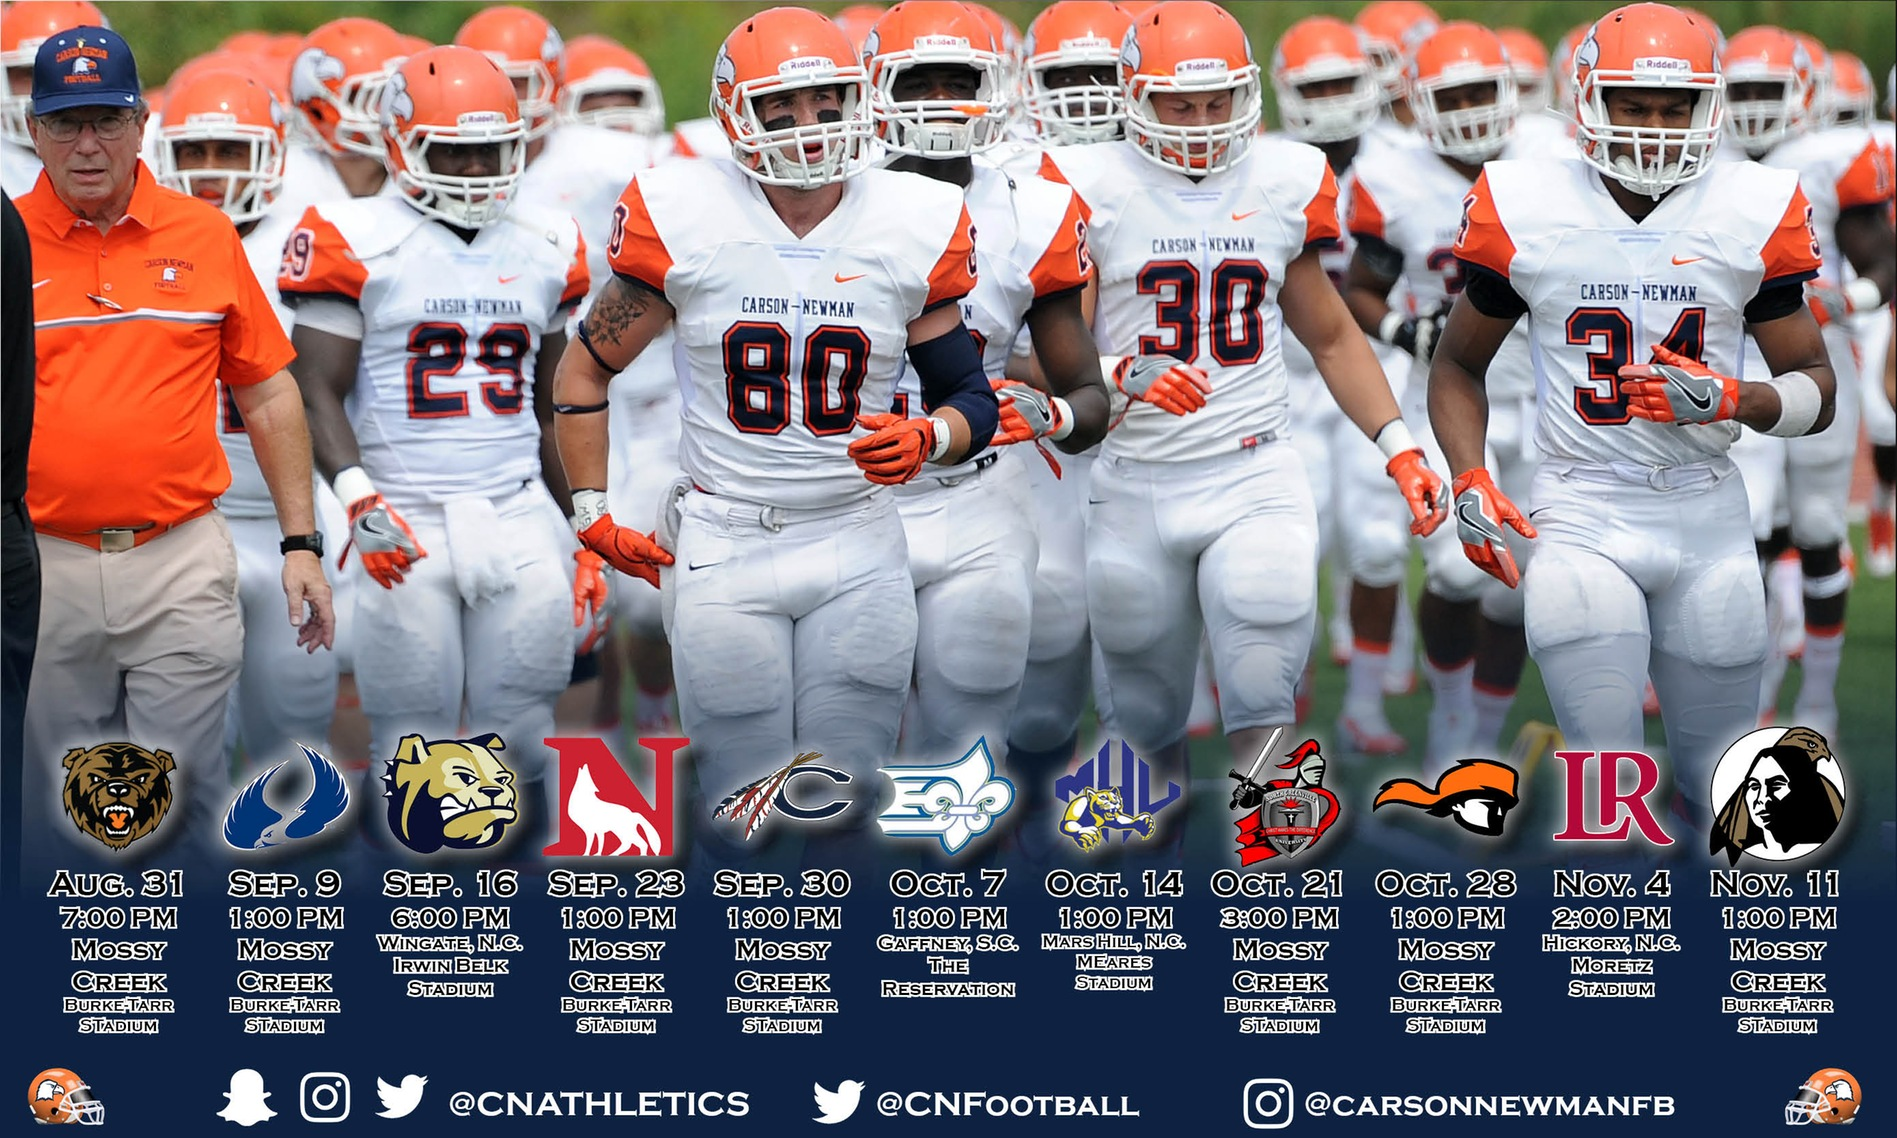 Seven home games highlight 2017 C-N Football schedule